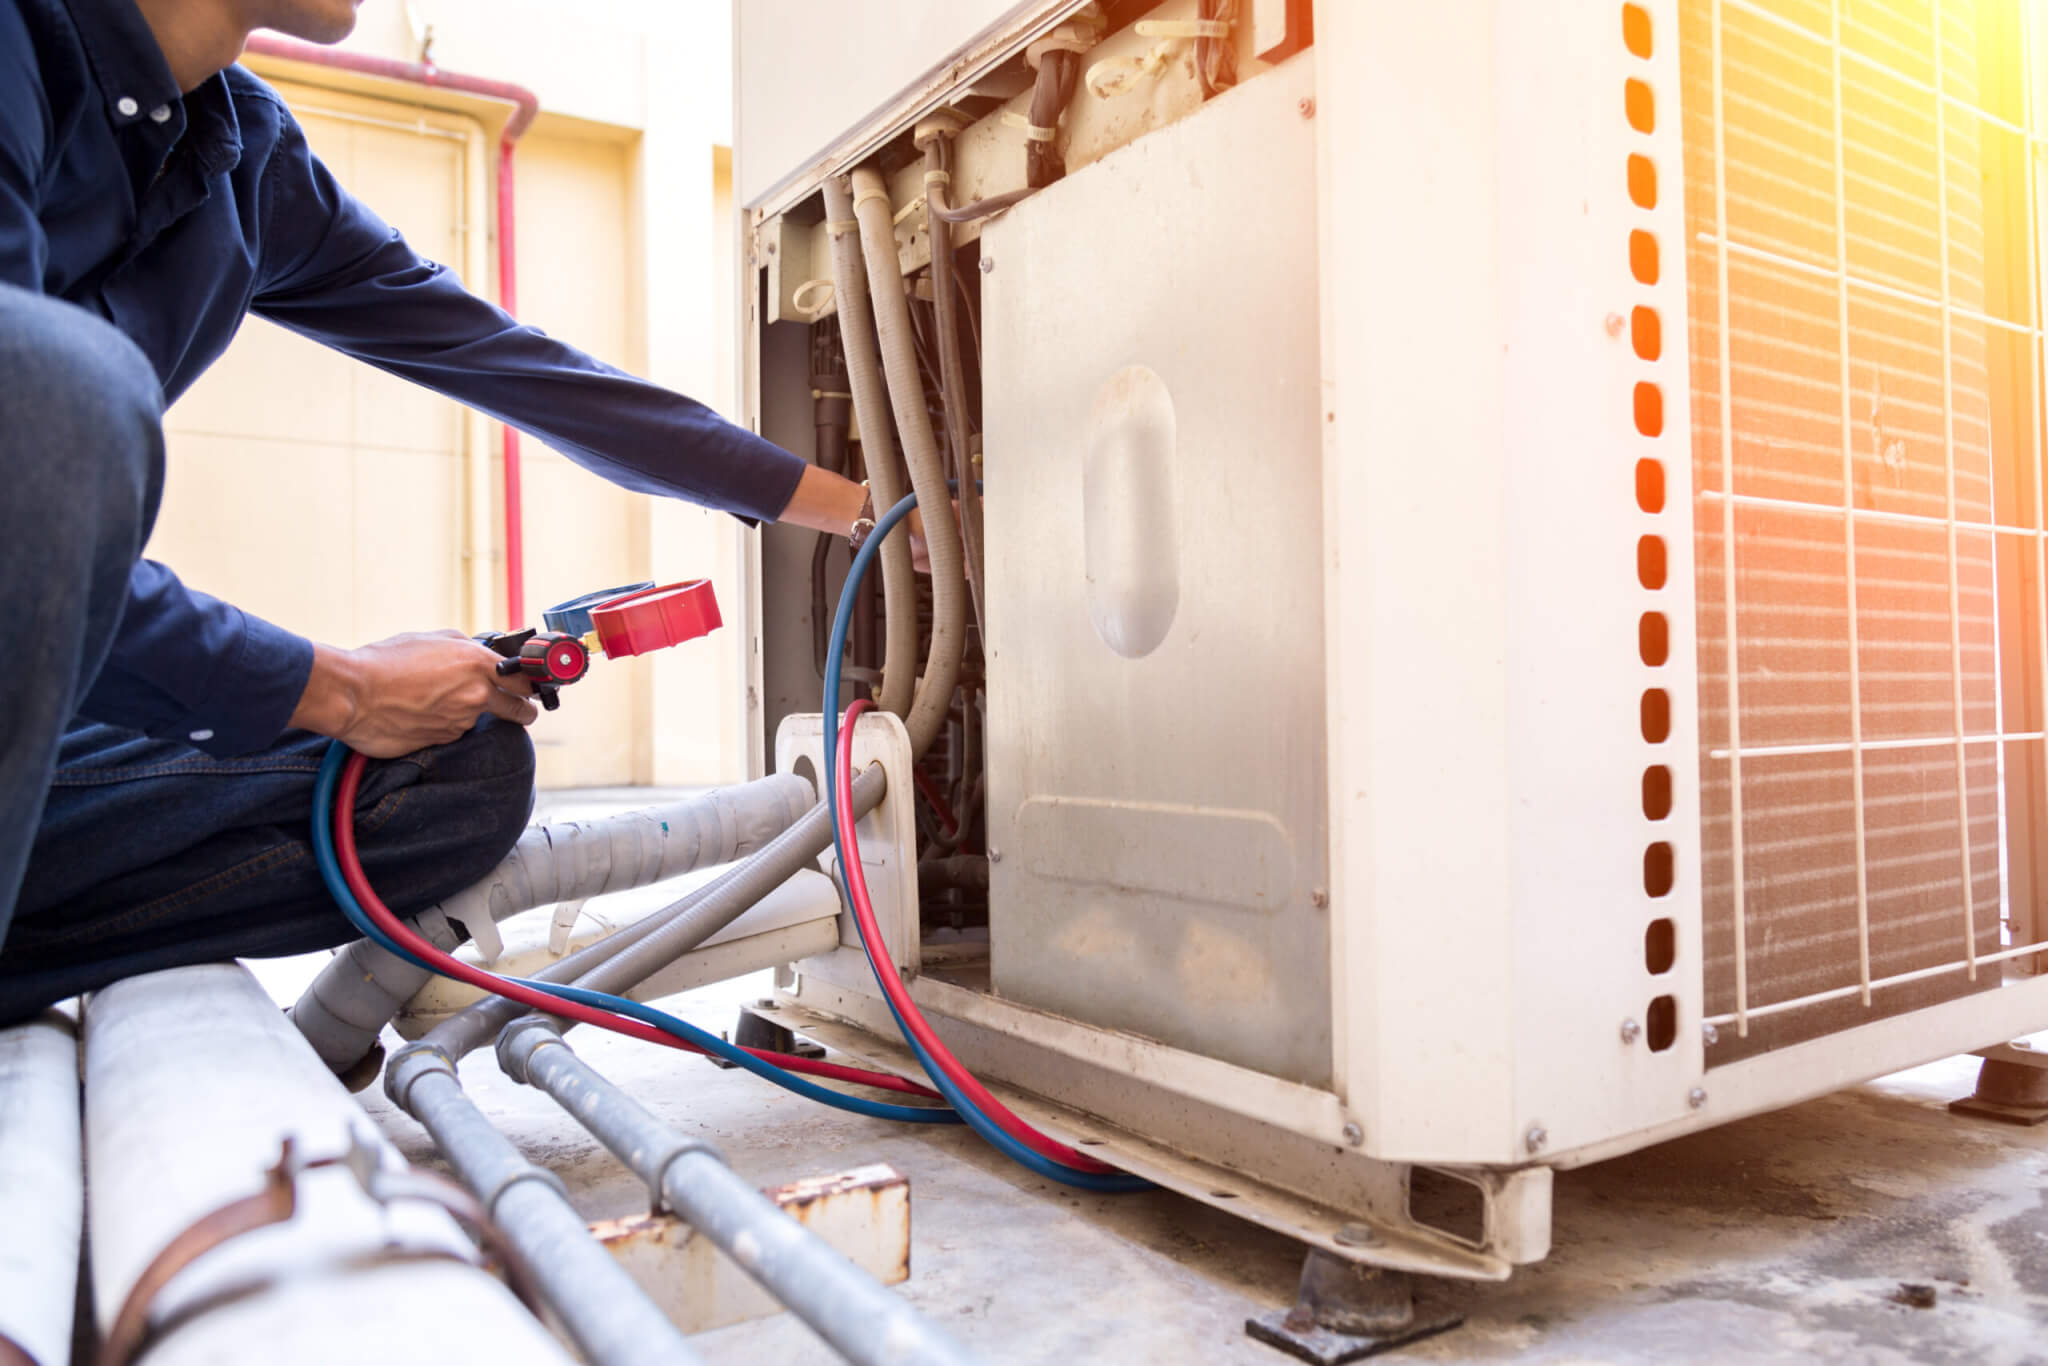 Technician is checking air conditioner during Rhode Island Summer covered by a home warranty